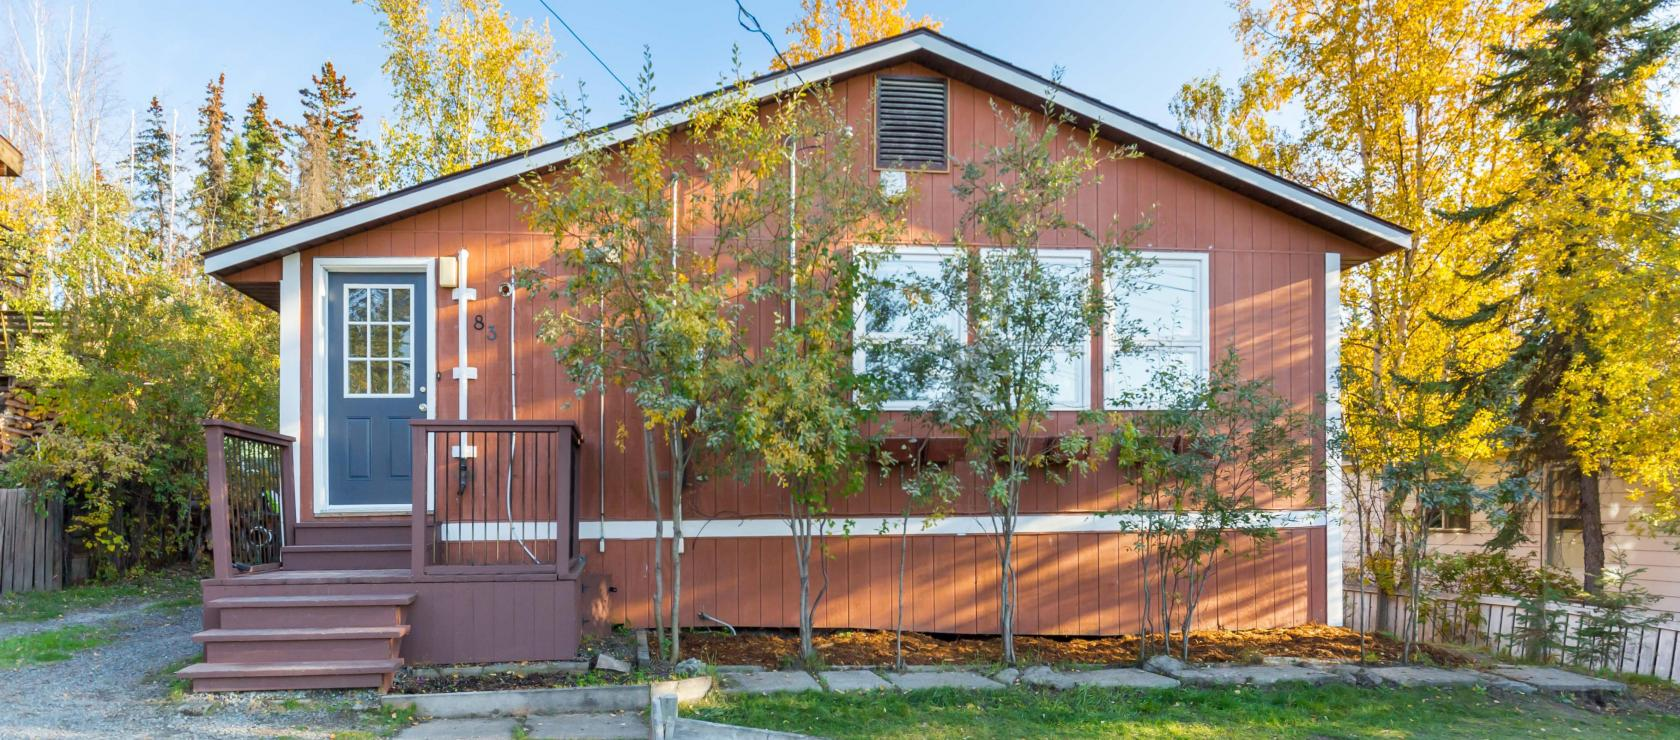 83 Morrison Drive, Old Town, Yellowknife 2